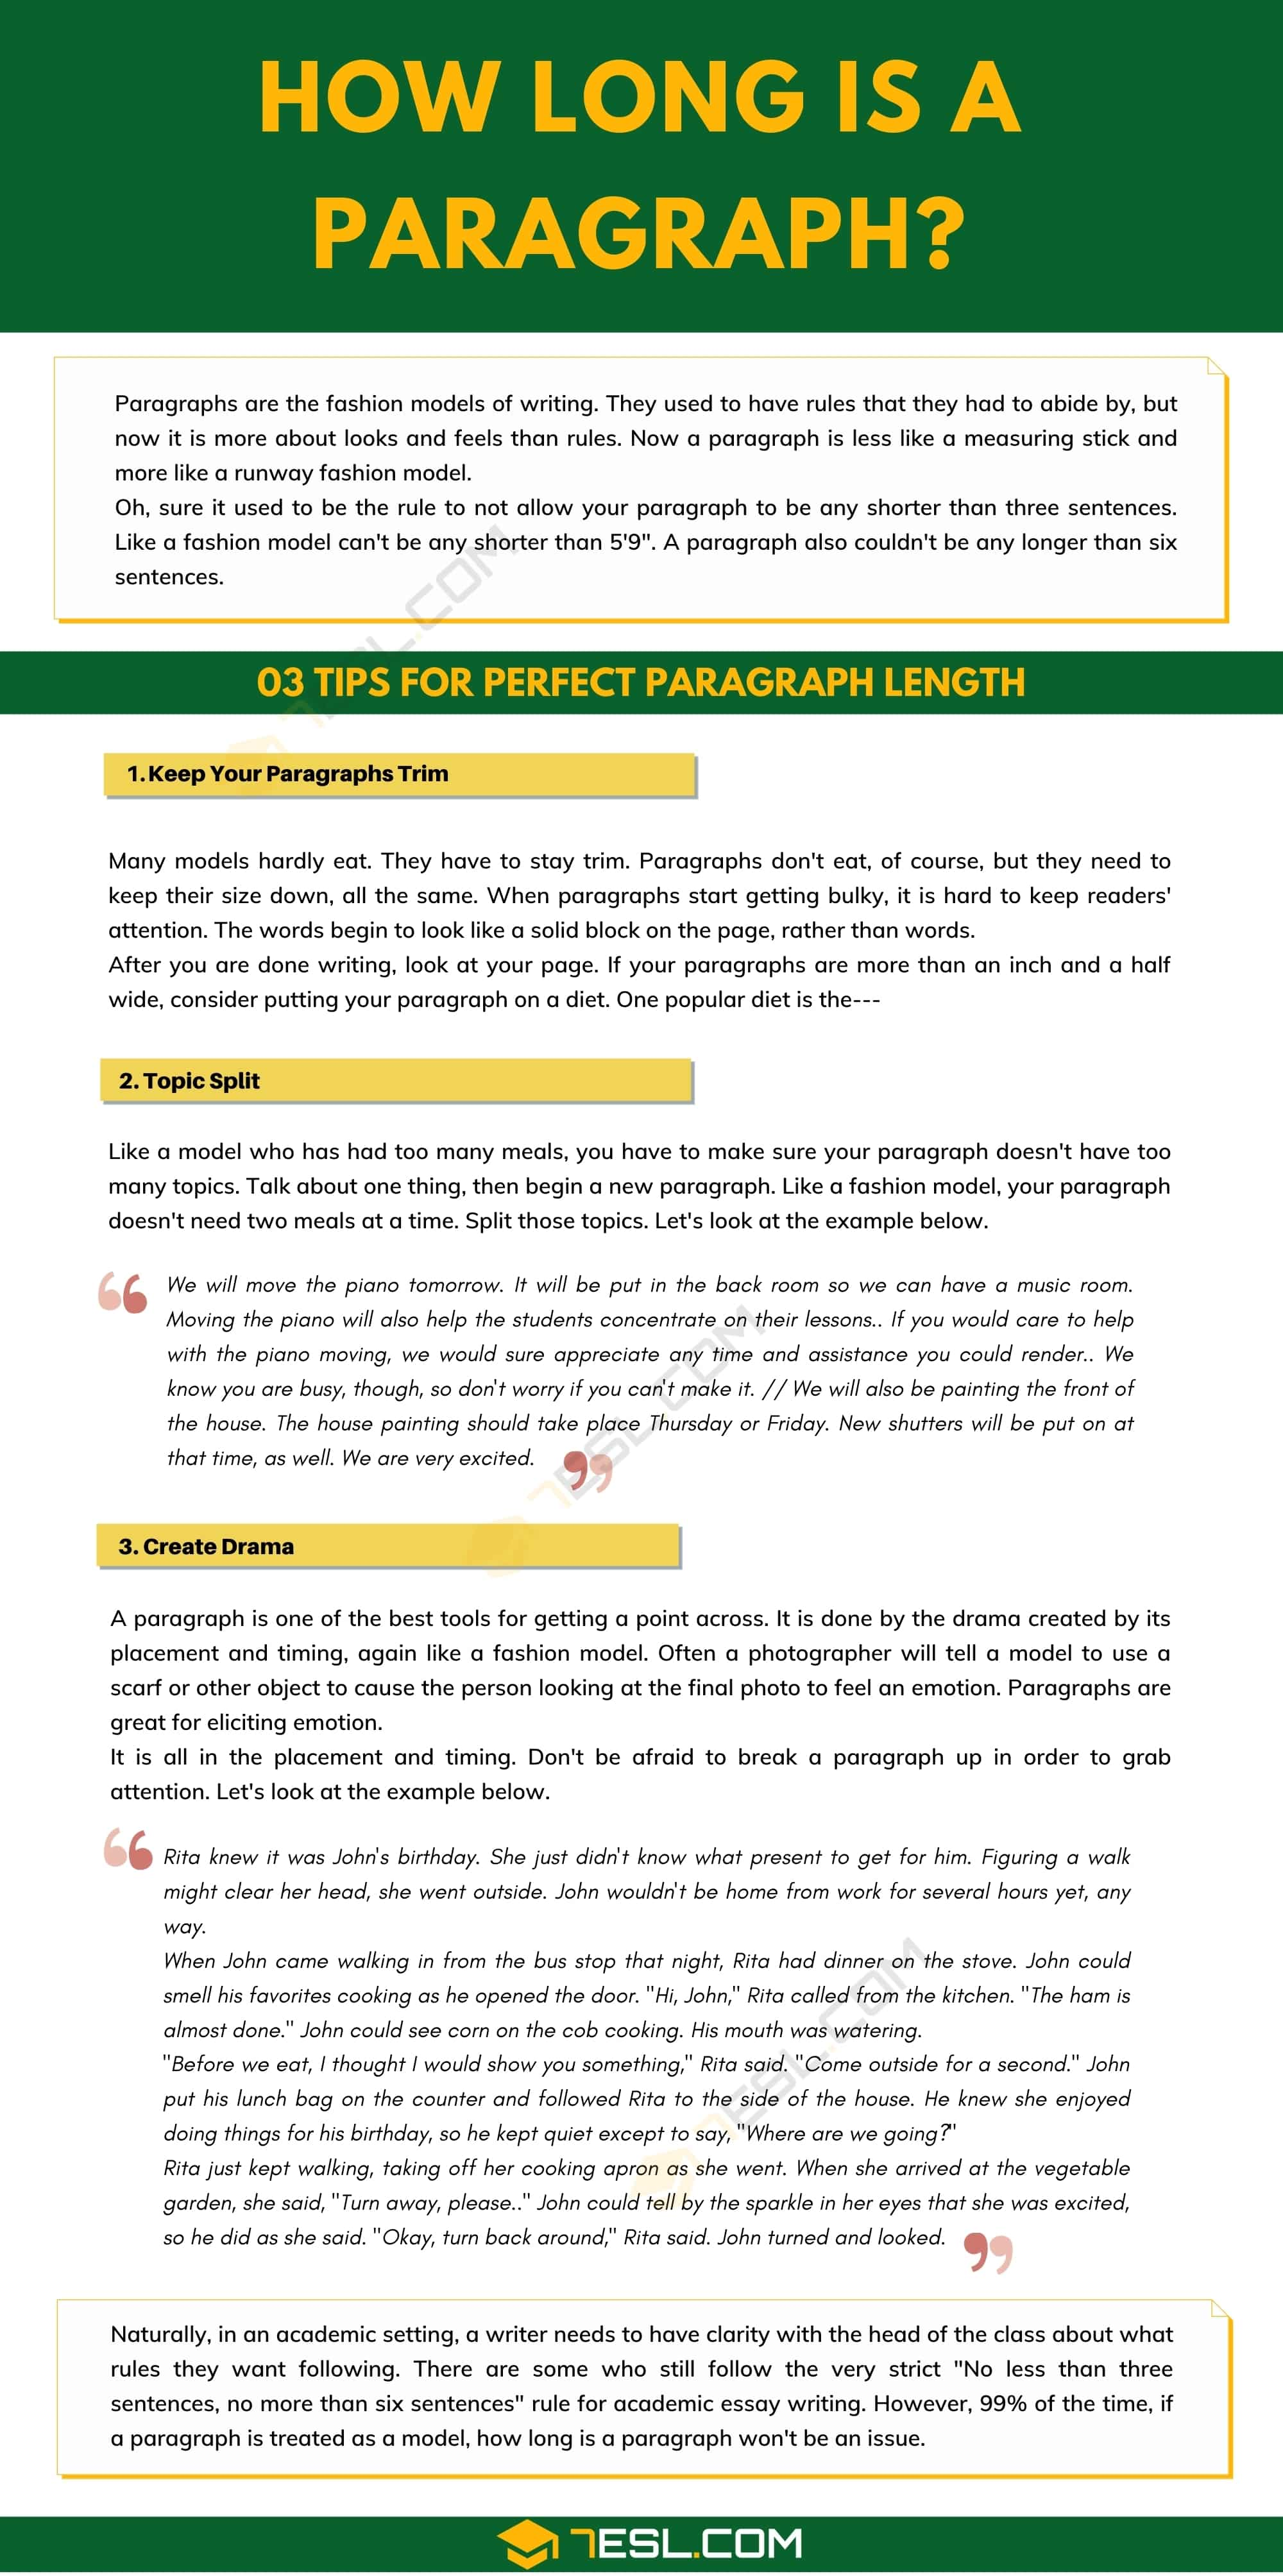 How Long Is A Paragraph? | 3 Useful Tips for Perfect Paragraph Length